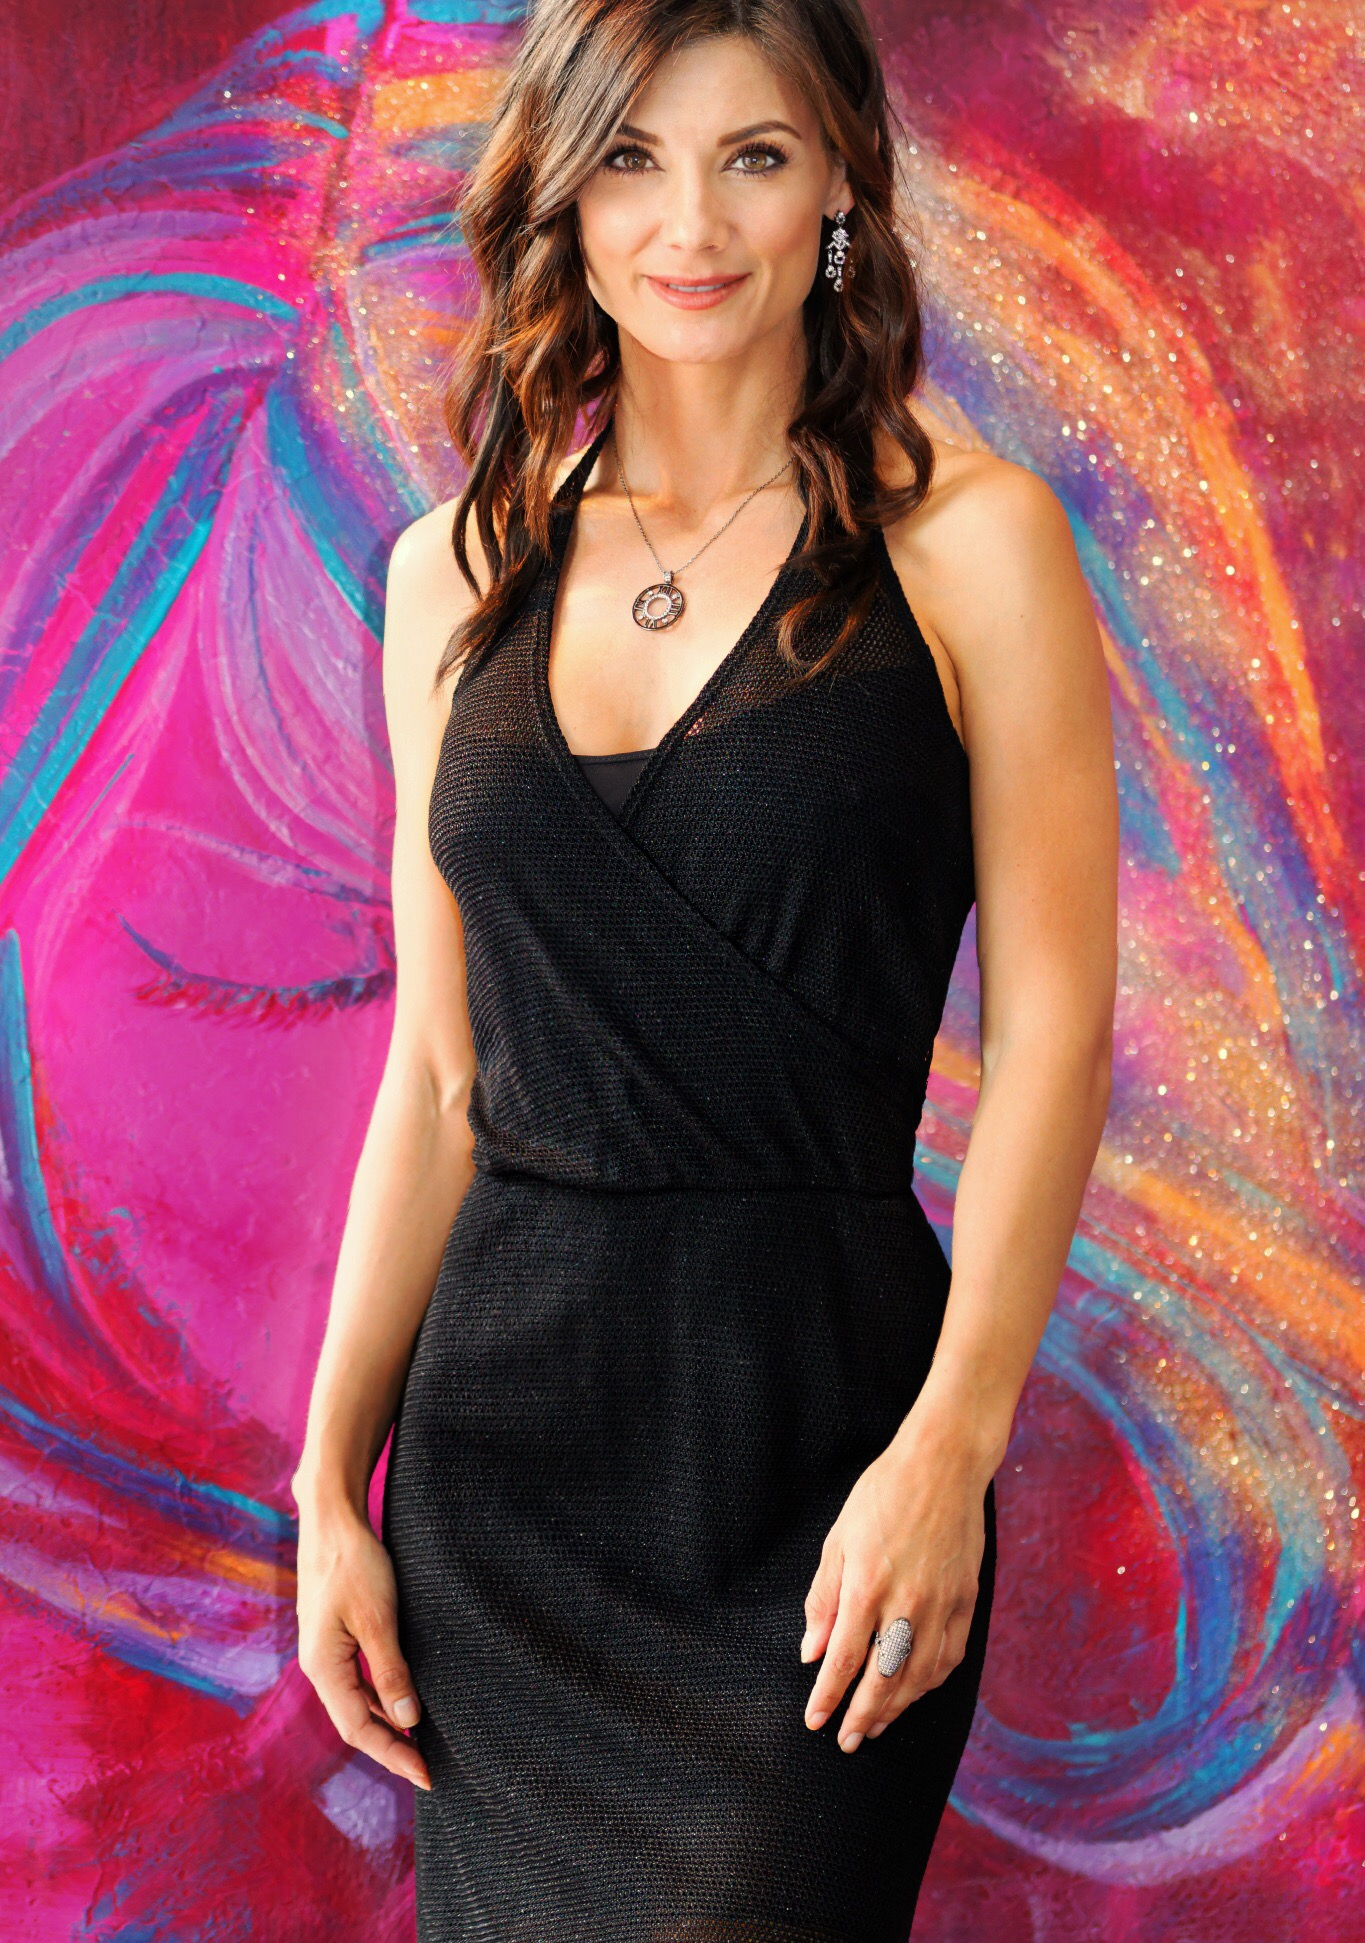 Halter Mini Dress in Black from Only Hearts - Available in store